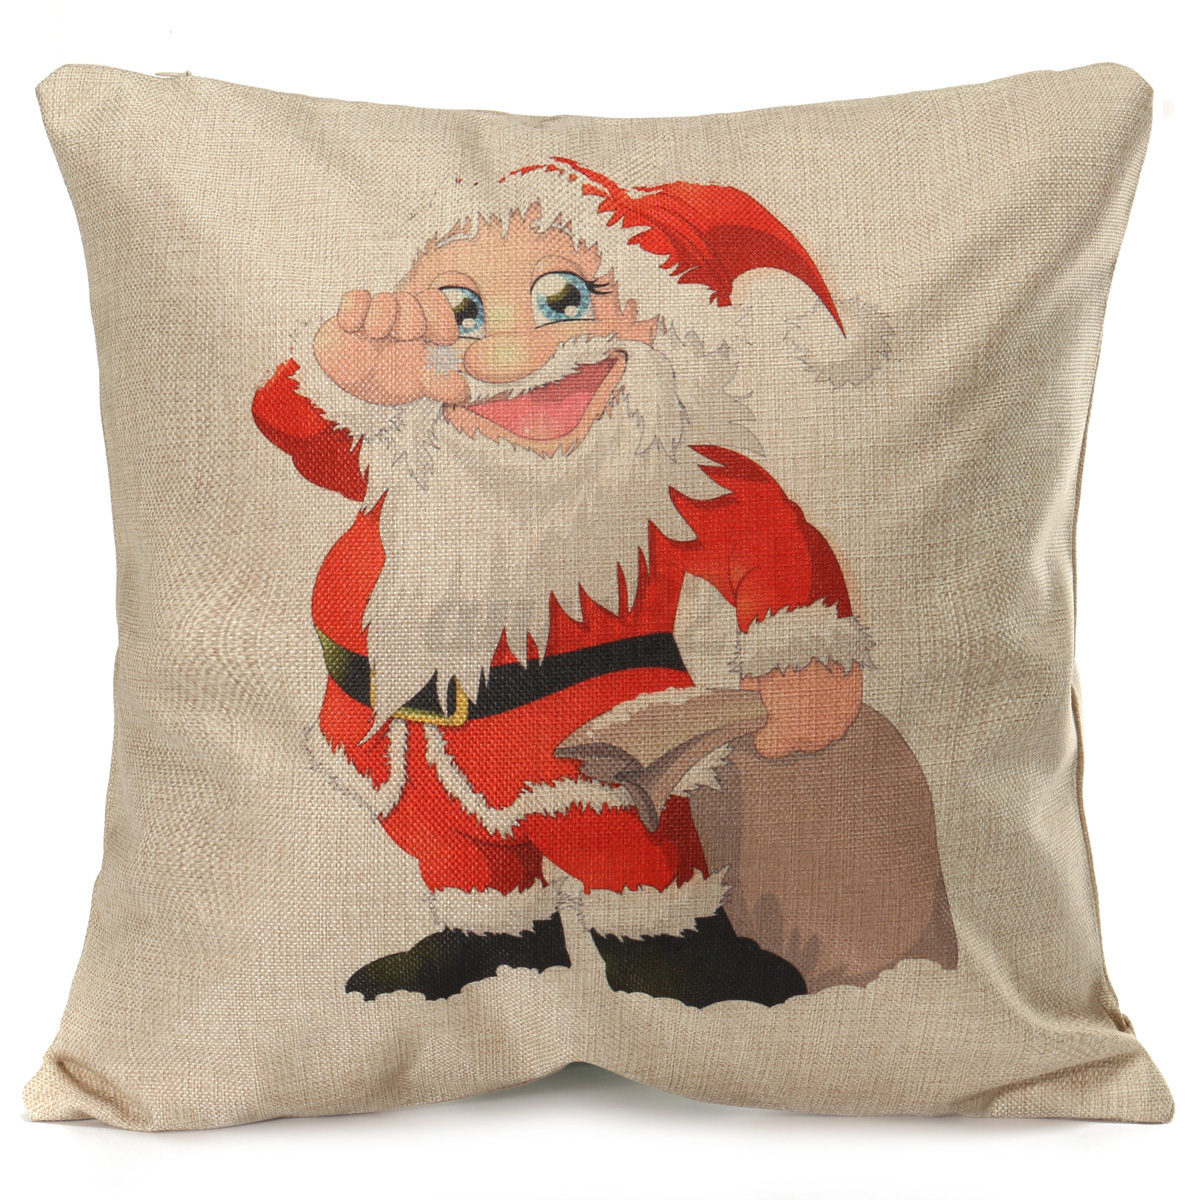 Cushion Covers Christmas Vintage Cotton Linen Throw Pillow Case Xmas Cushion Cover